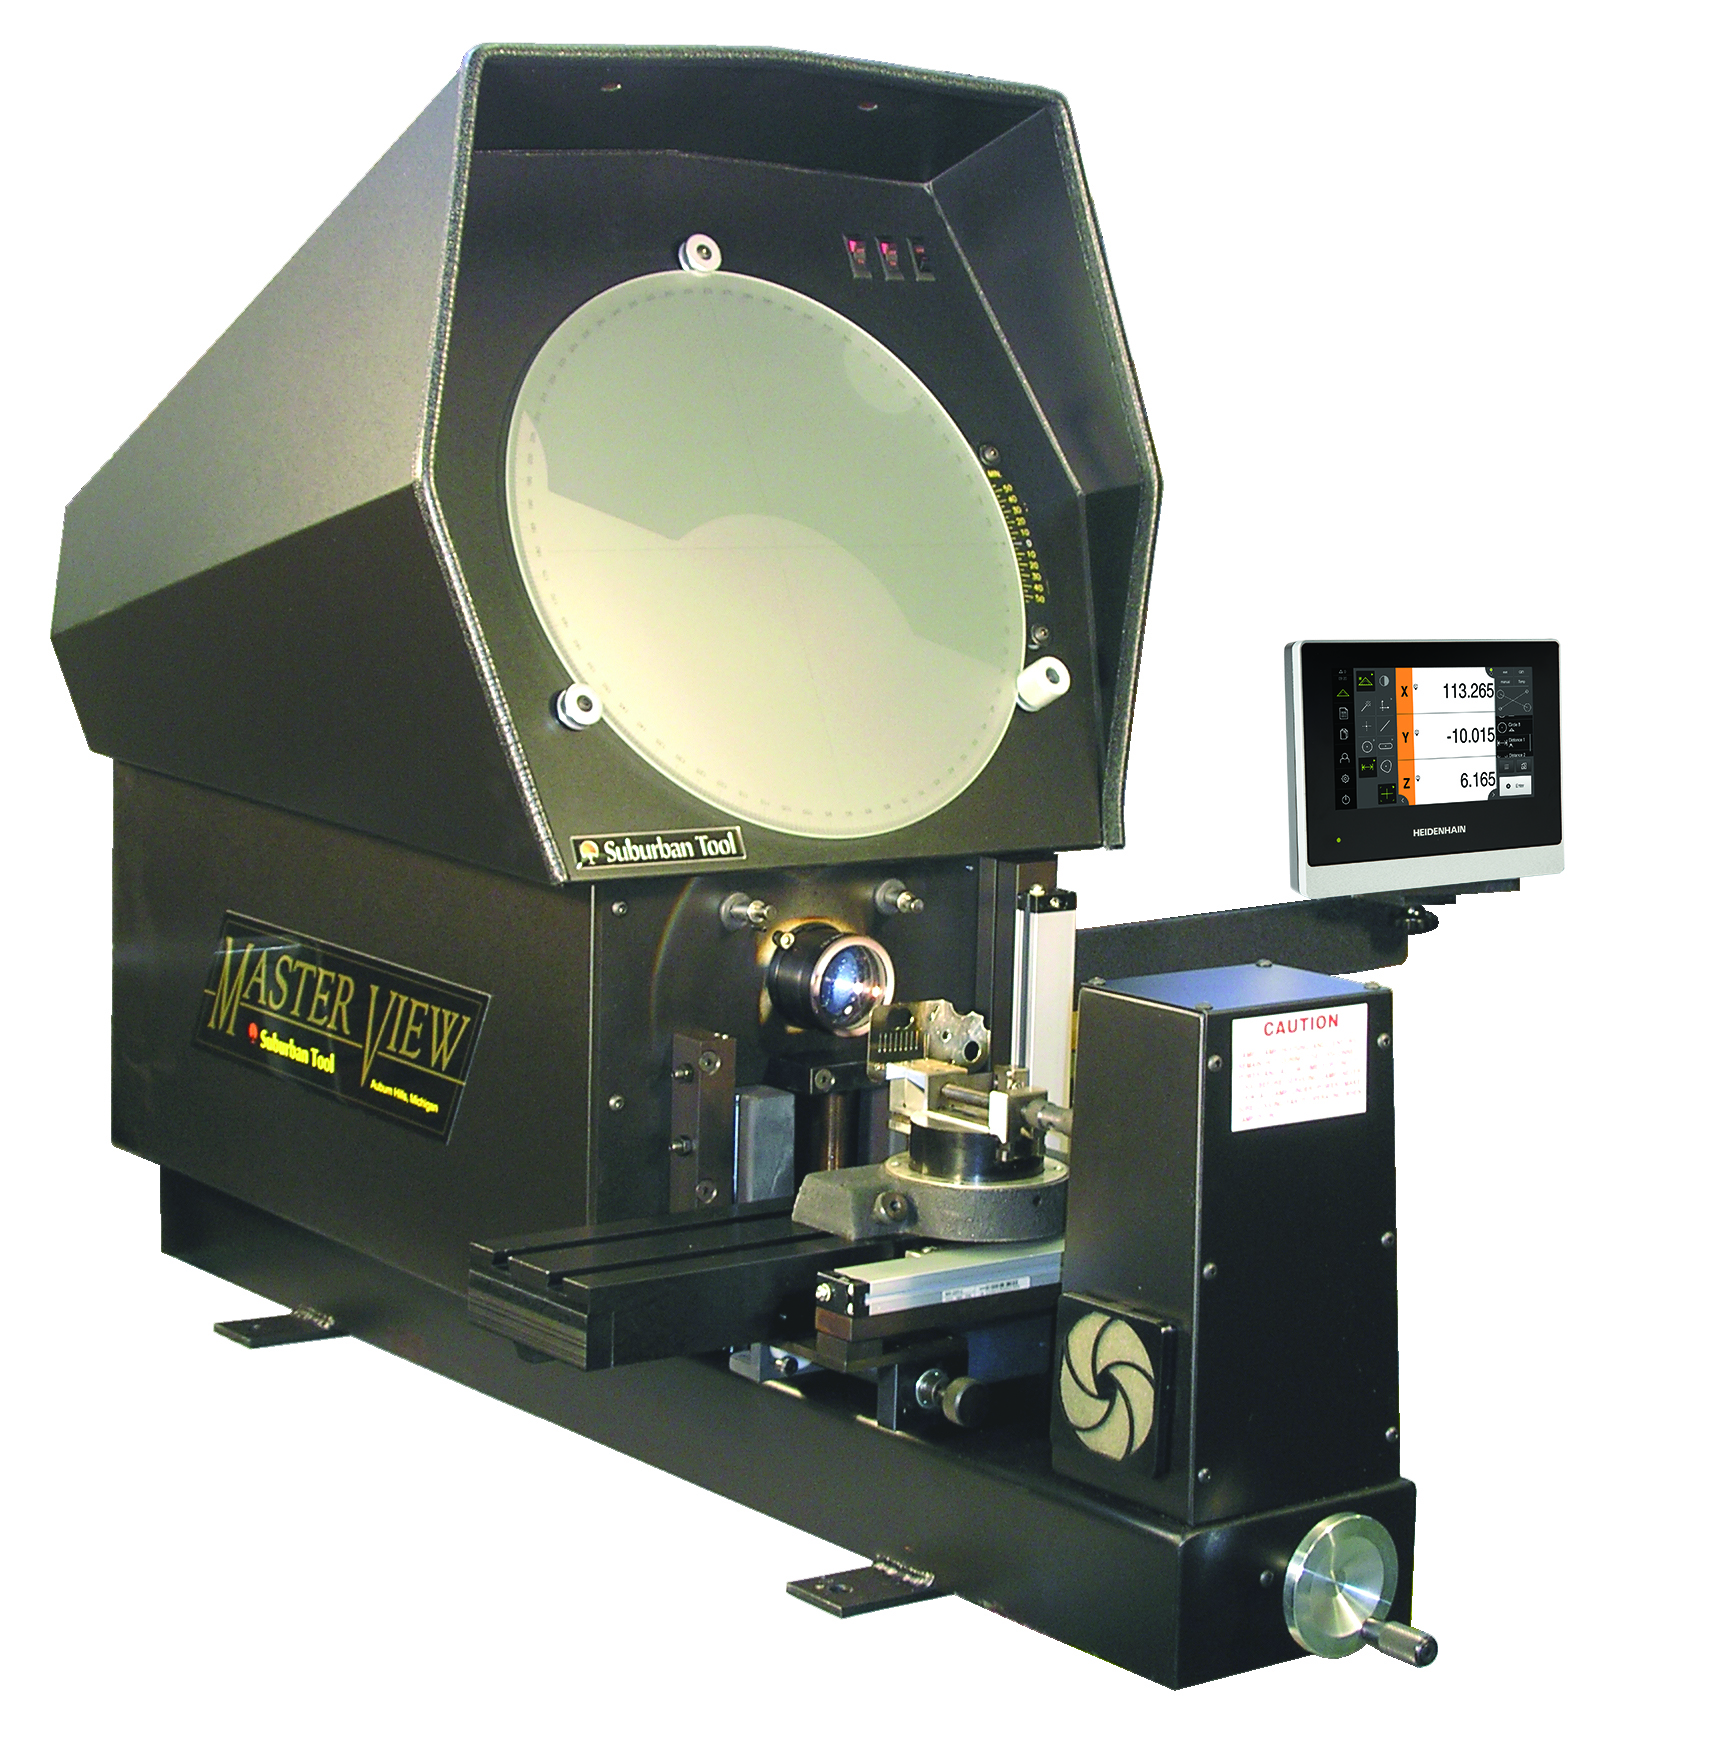 "Suburban Tool Master-View 14"" Optical Comparators with Quadra-Chek Digital Readouts"